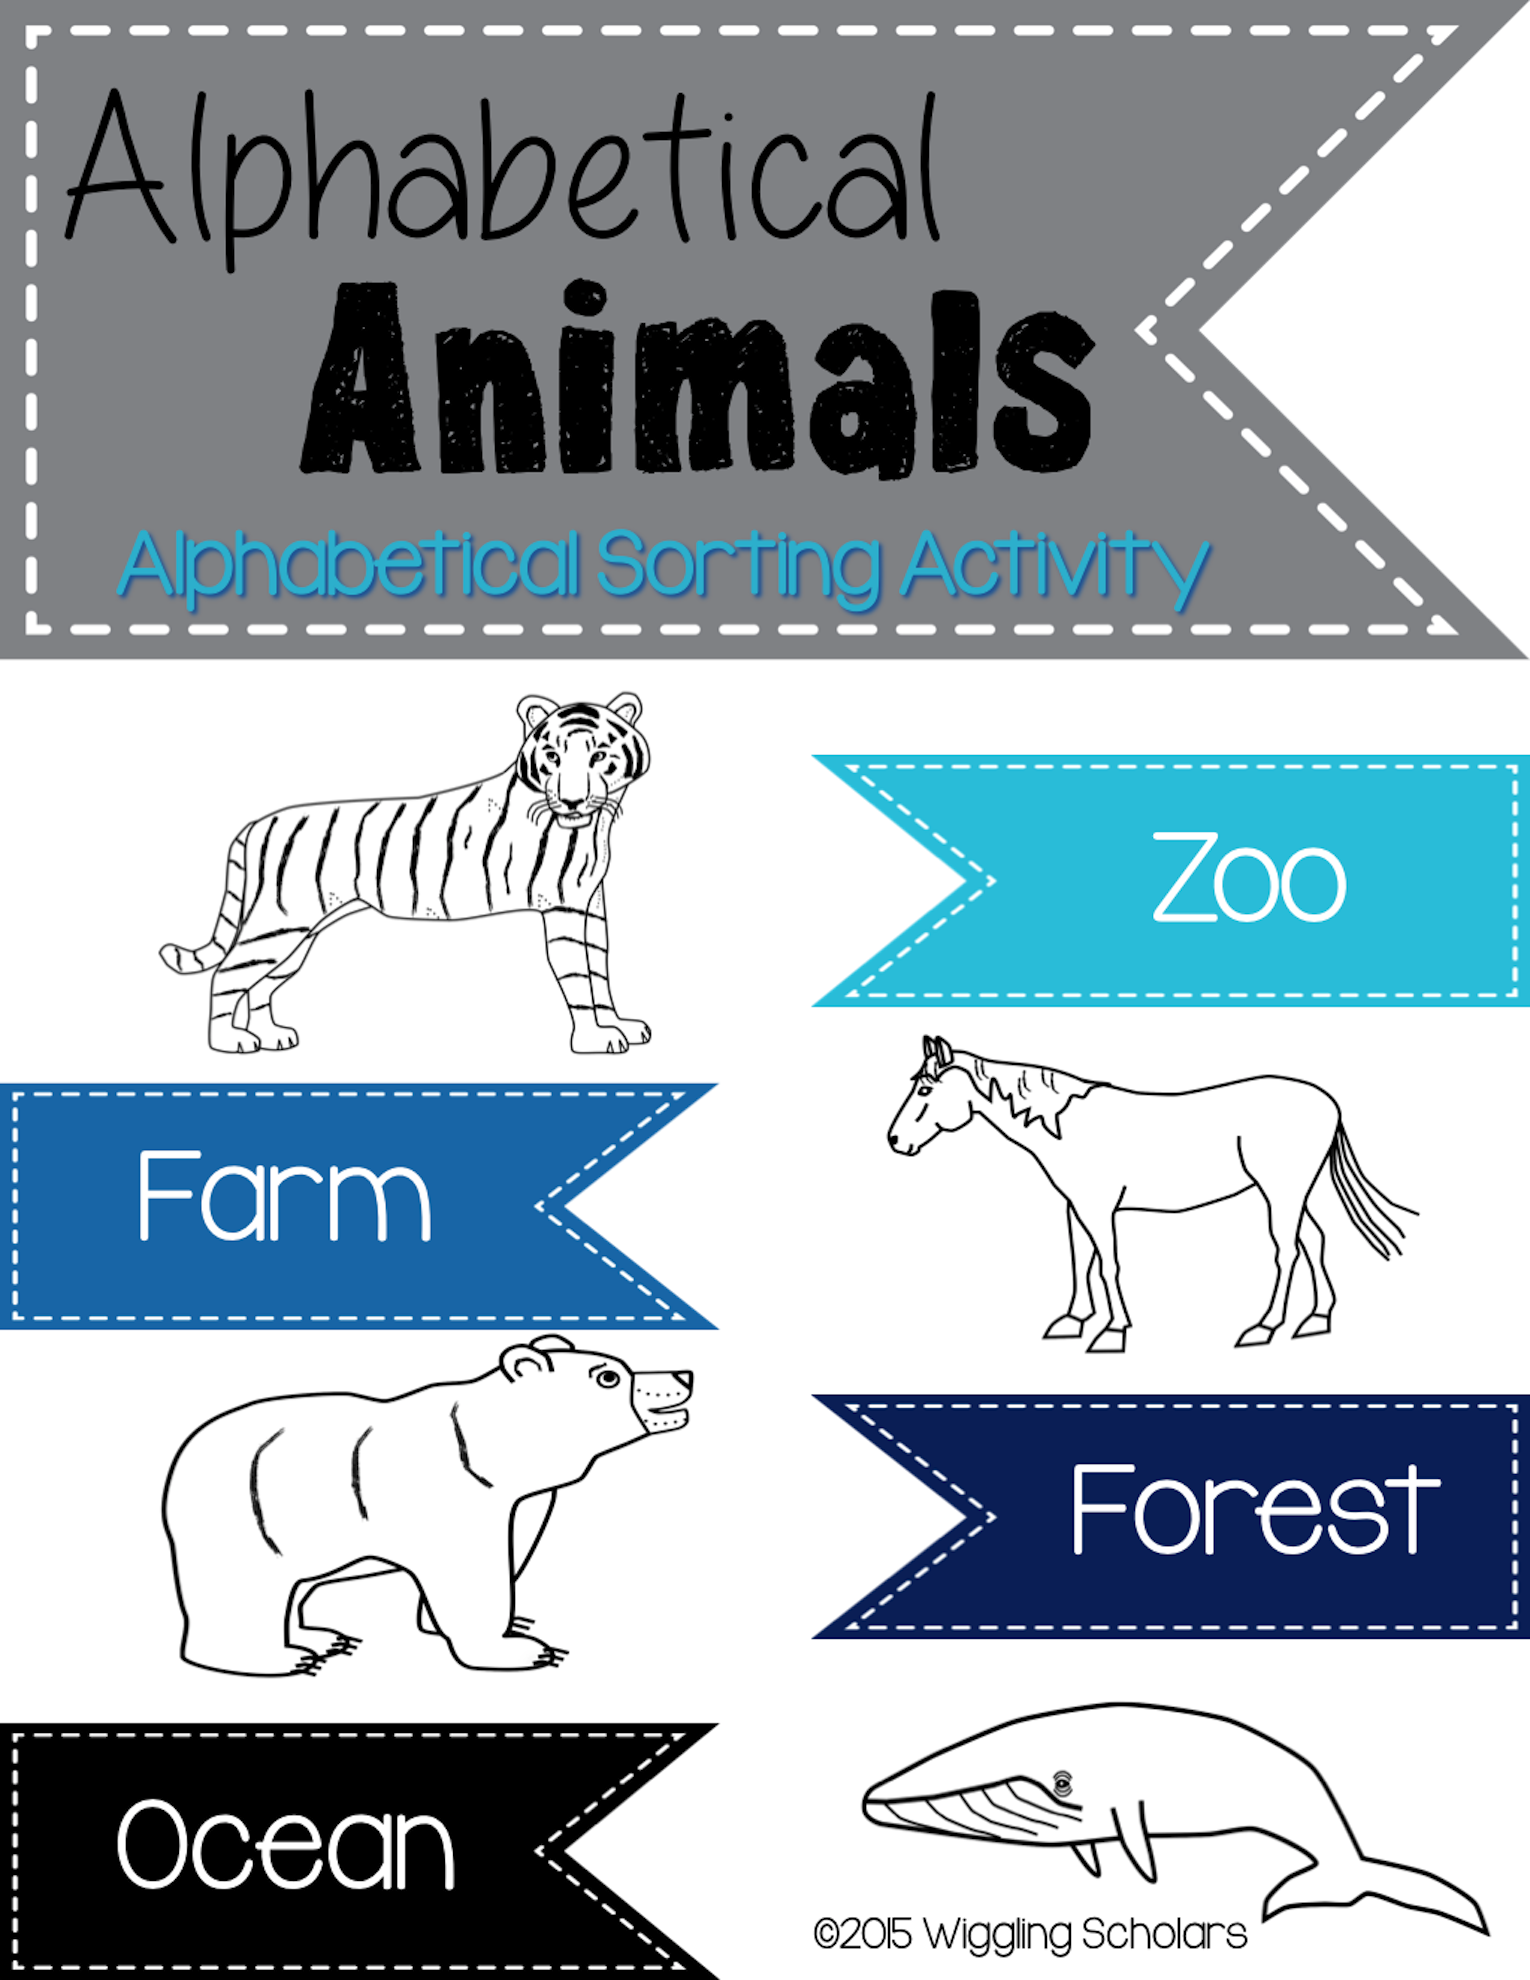 Alphabetical Animal Sort by Wiggling Scholars